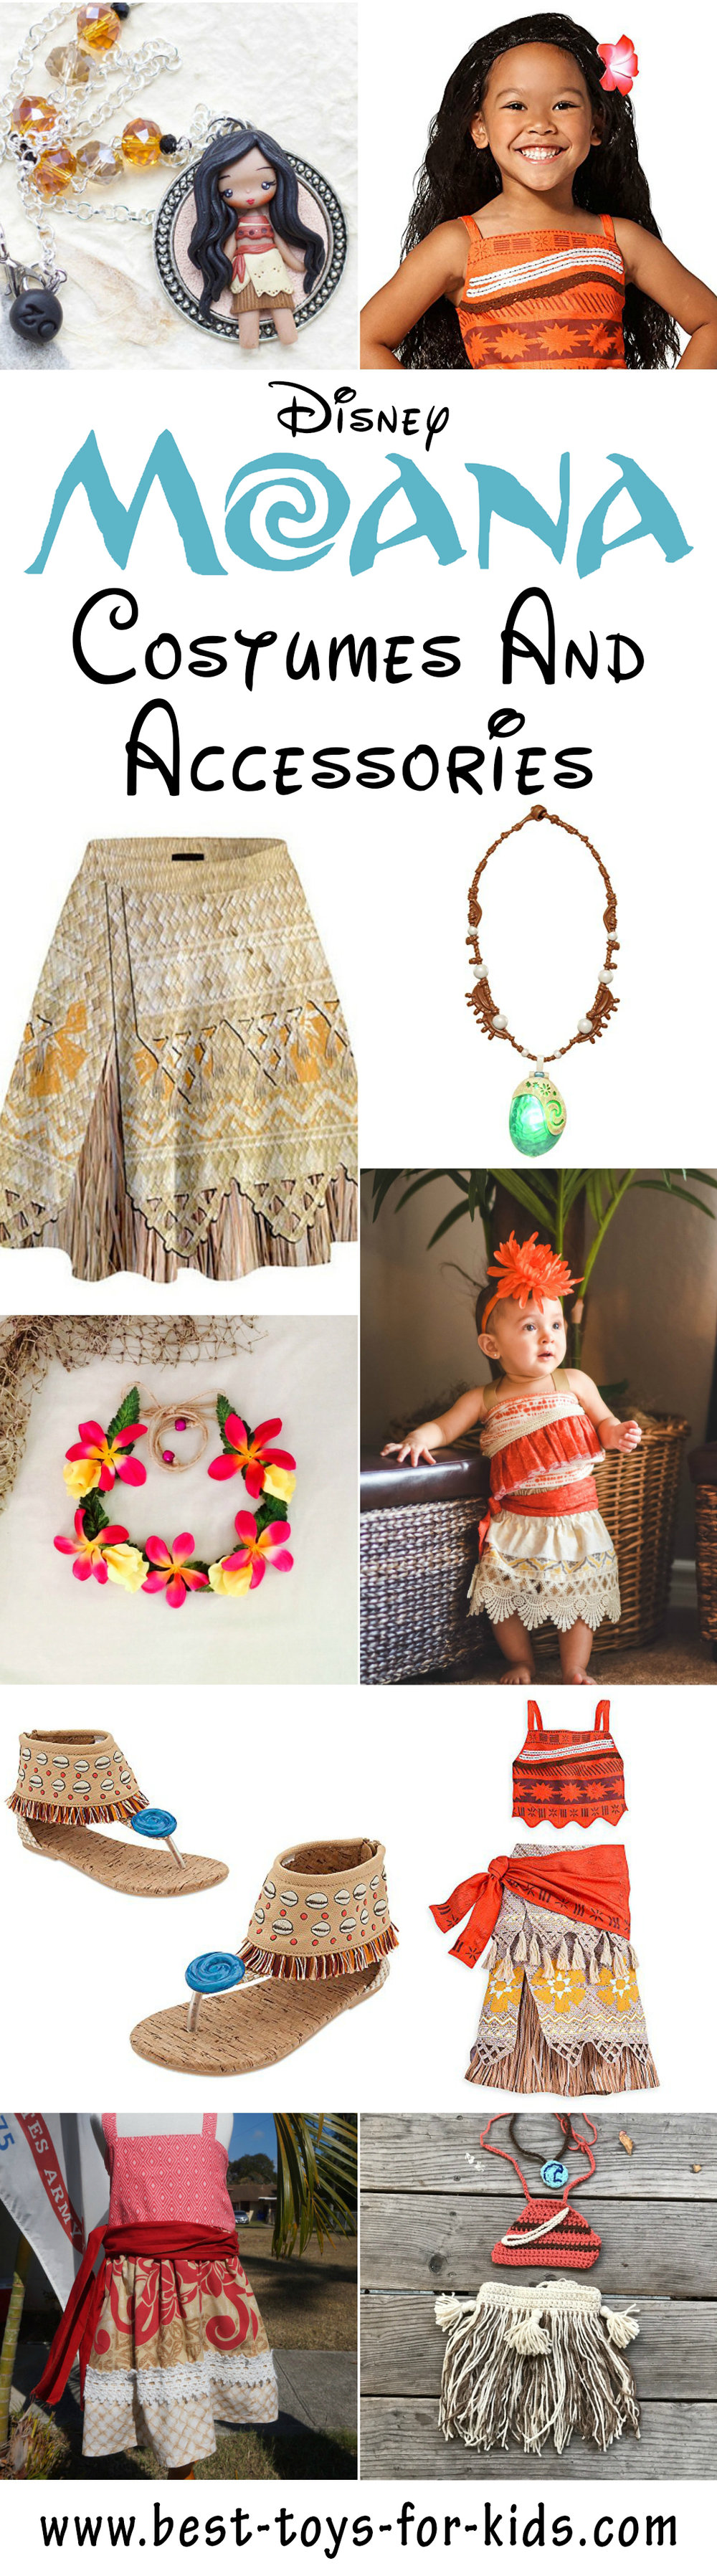 Disney Princess Moana Costumes for Kids to Play Dress Up or Parties